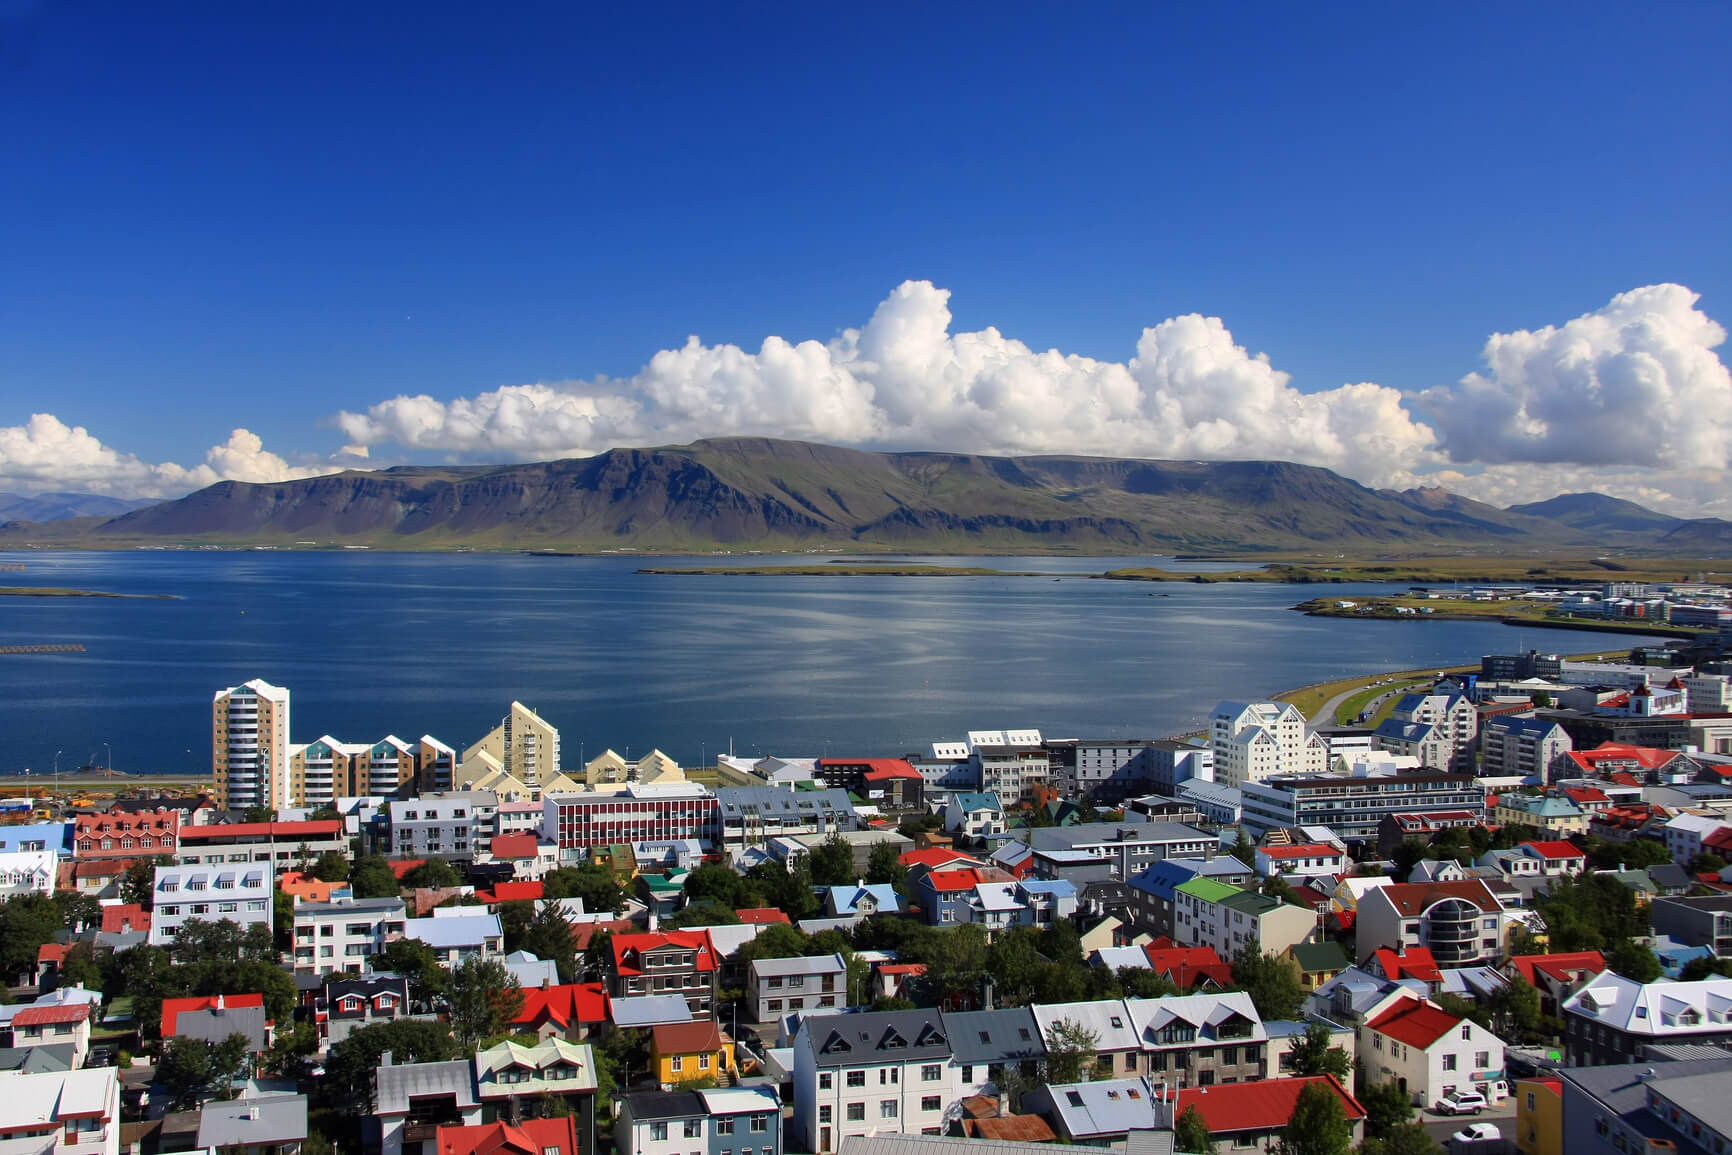 HOT!! Non-stop from Baltimore or Boston to Reykjavik, Iceland from only $193 roundtrip